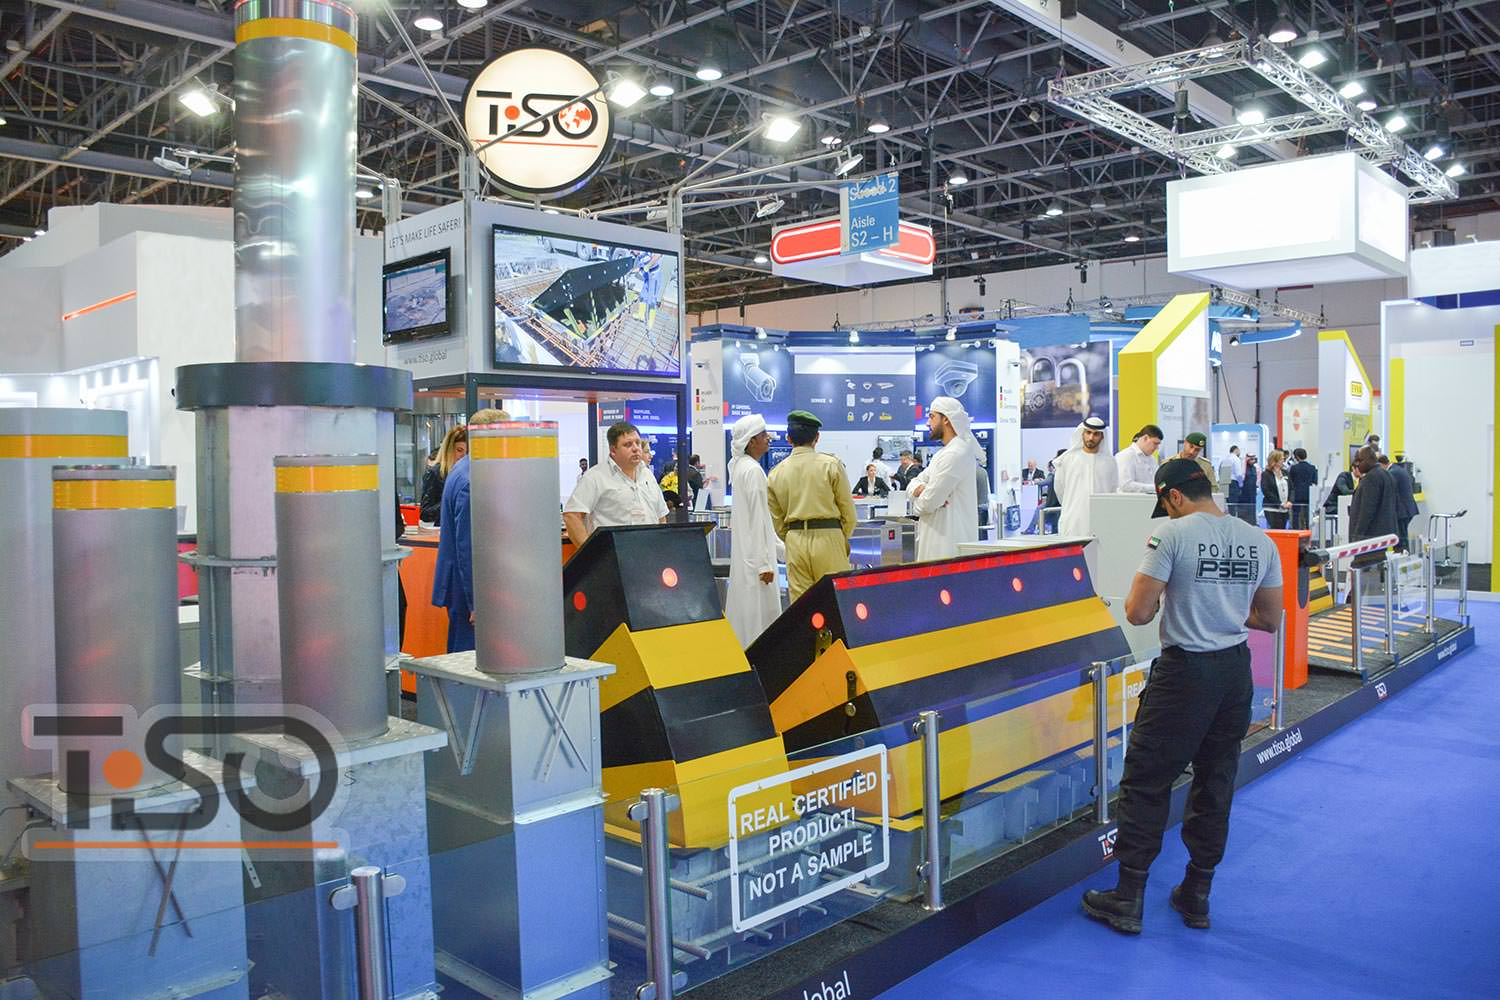 Road blocking systems, Intersec-2018